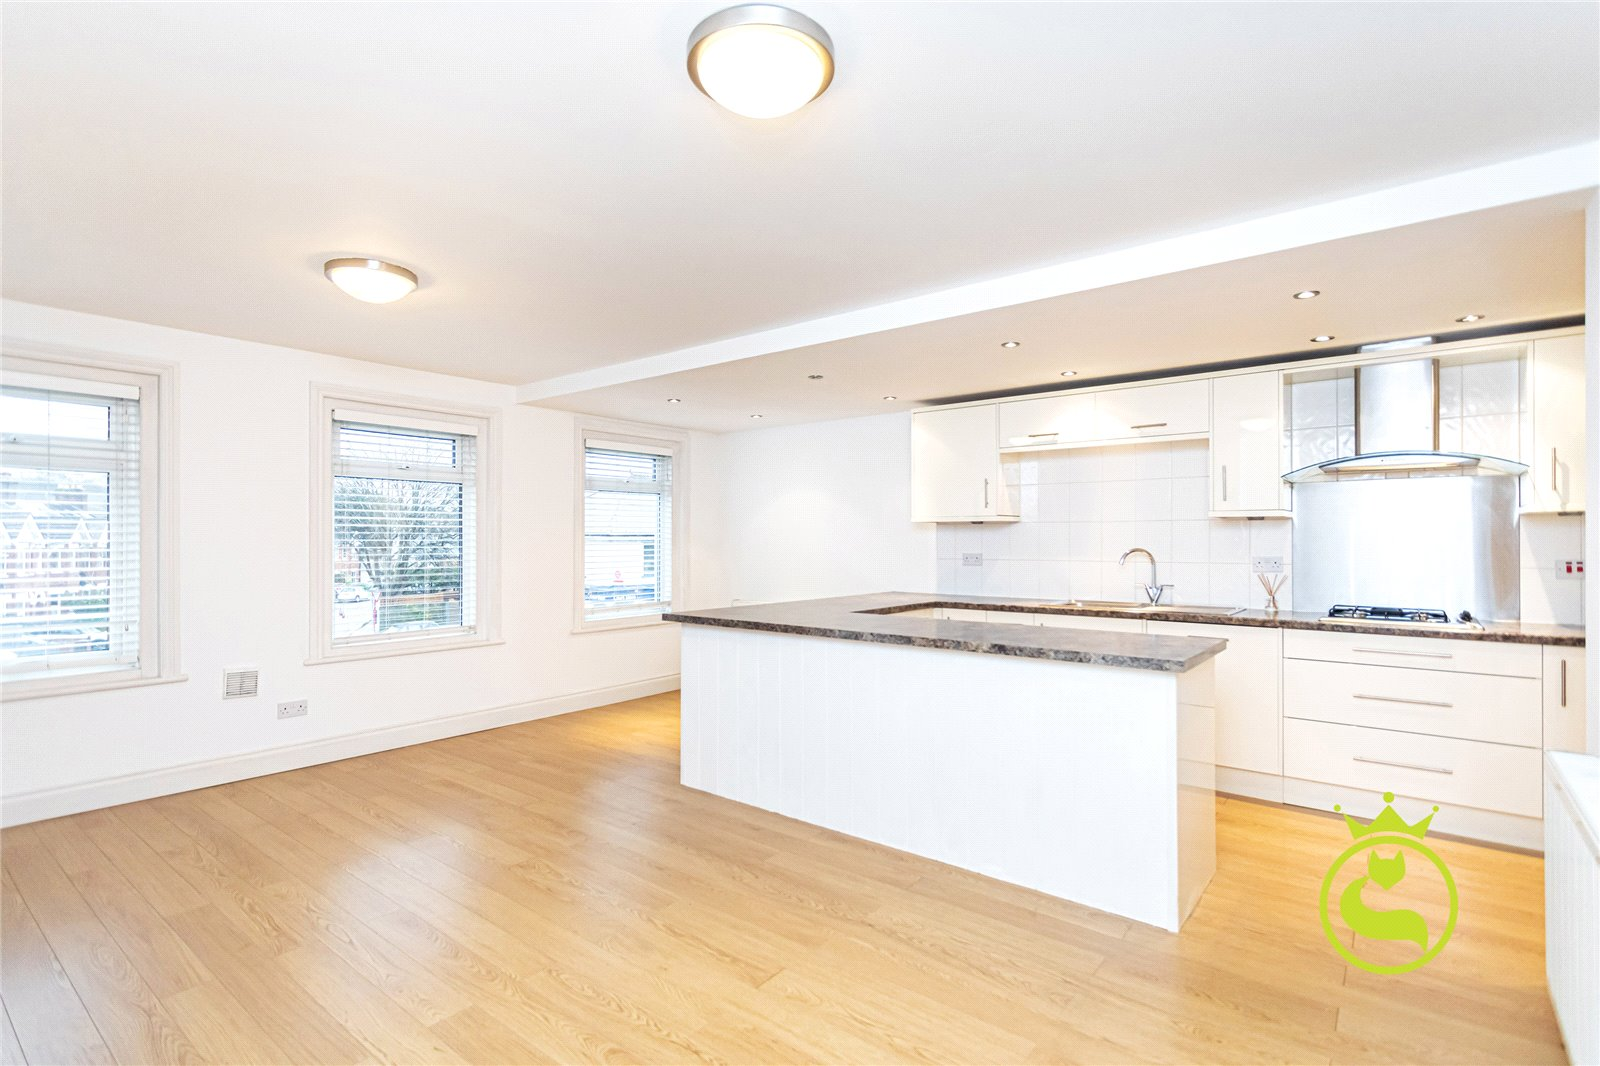 3 bed apartment for sale in Sandbanks Road, Whitecliff, BH14